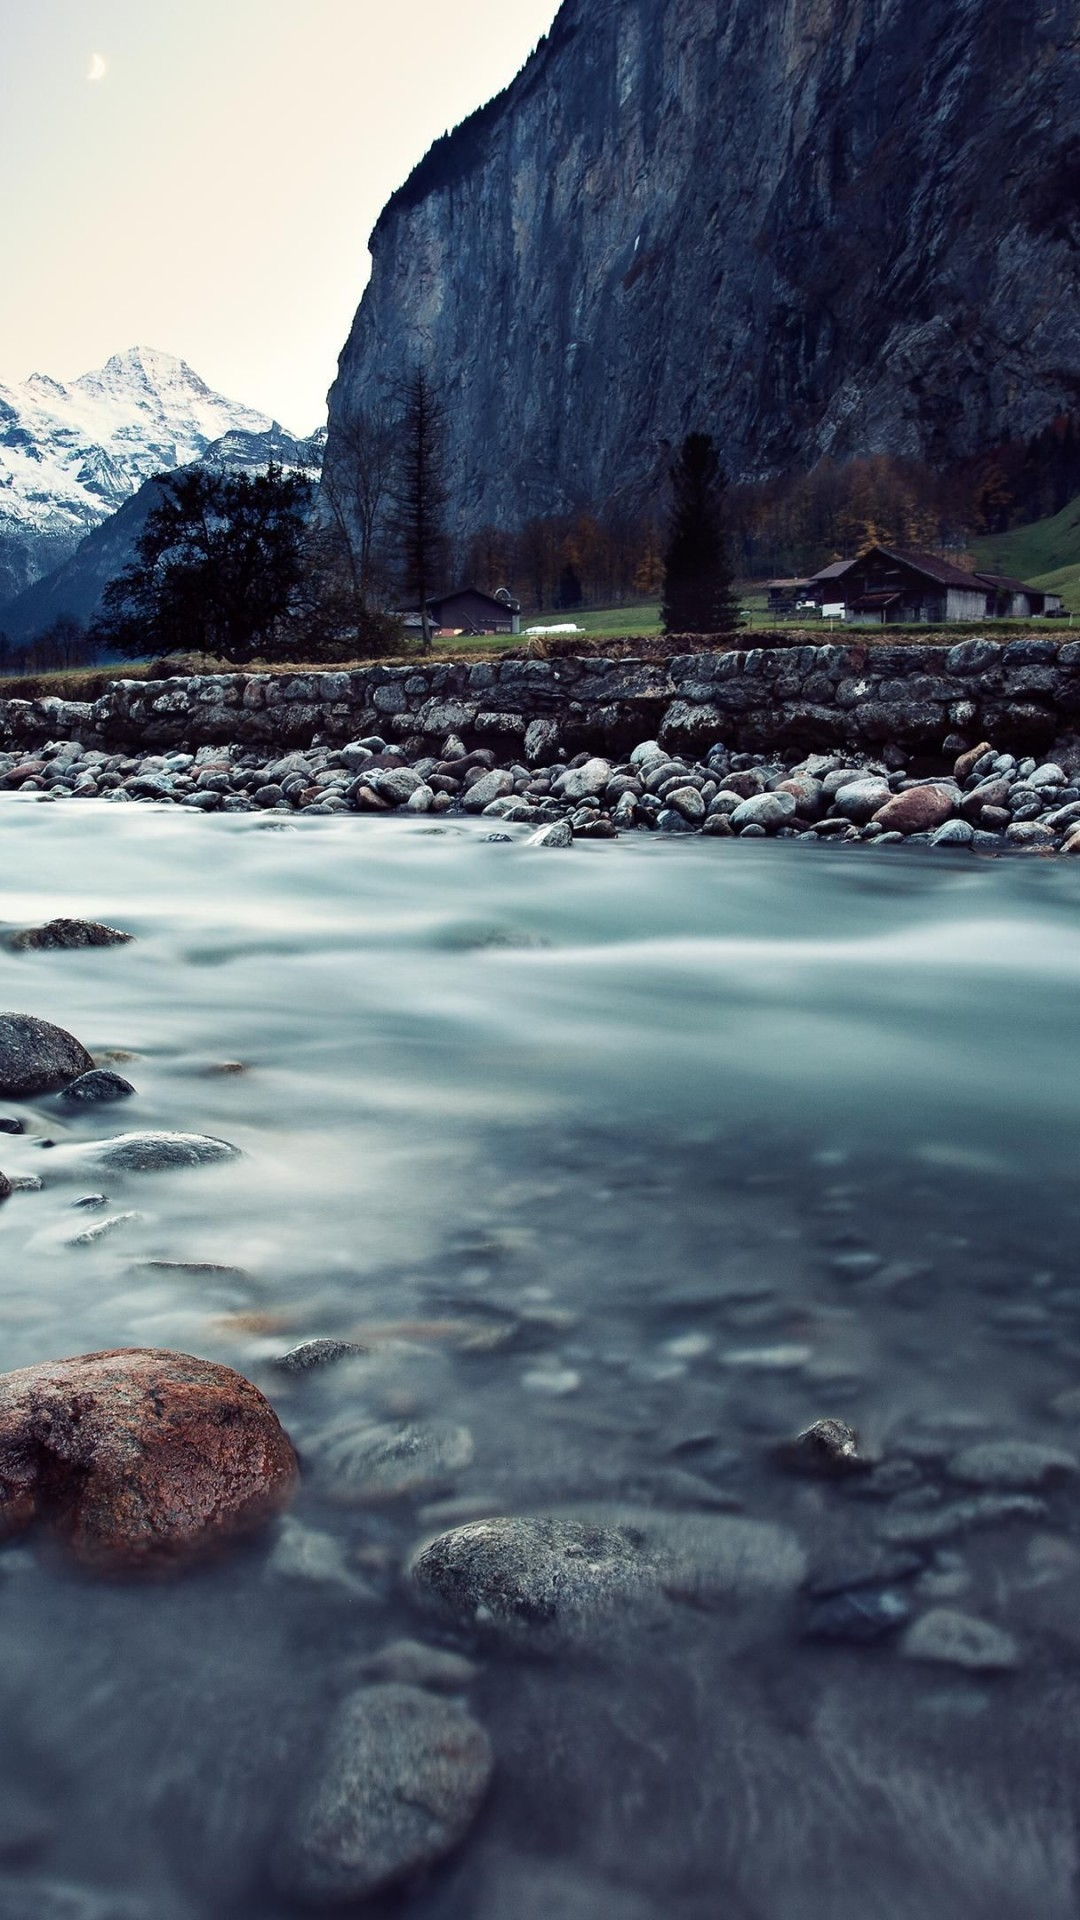 Wallpaper switzerland 4k hd wallpaper river mountains - Hd 4k resolution wallpaper ...